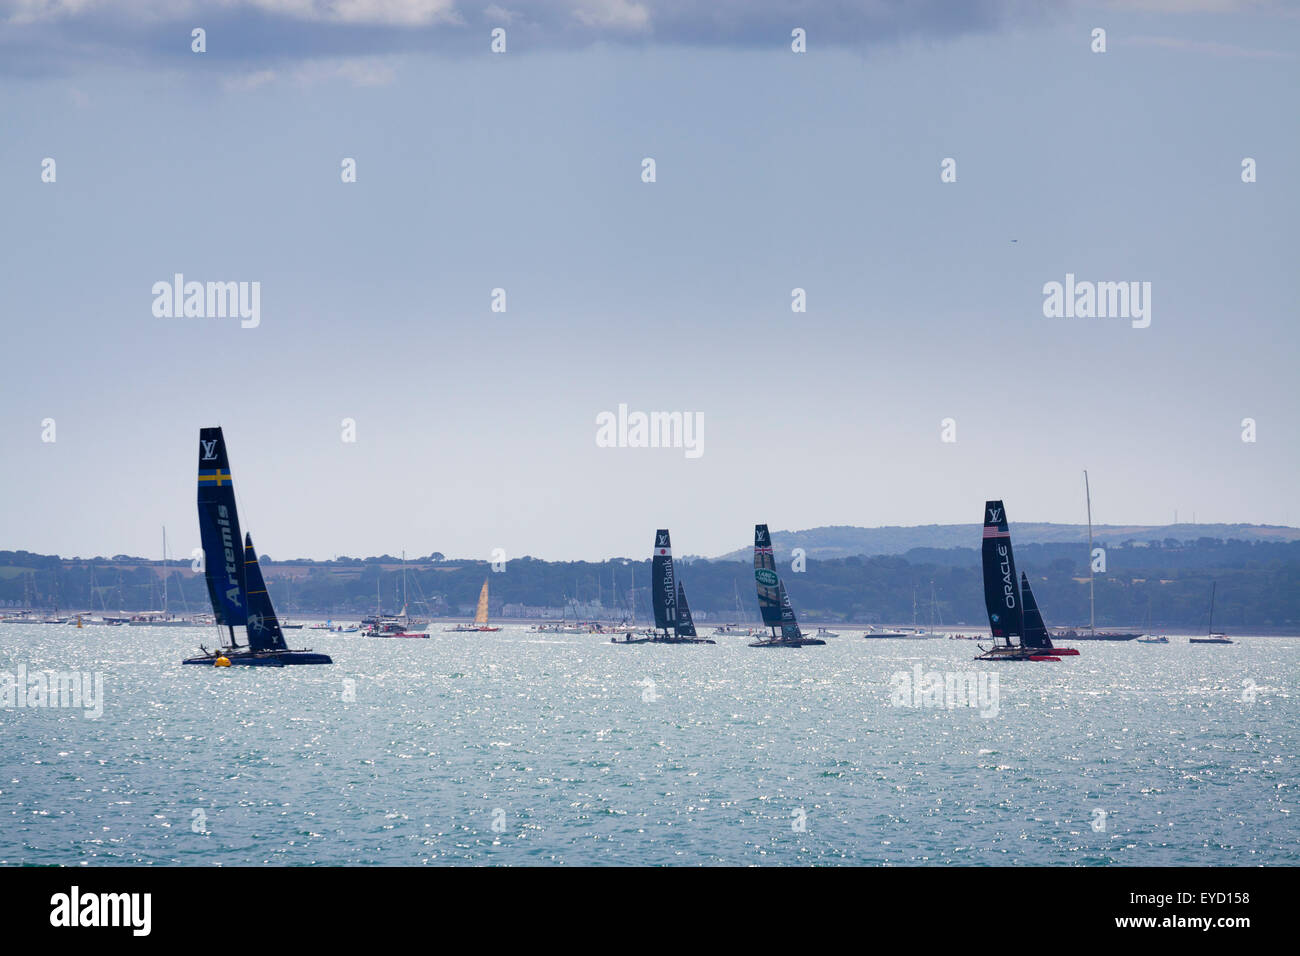 Admirals Cup races off Portsmouth on Saturday 25 July 2015 the yachts racing in the solent - Stock Image